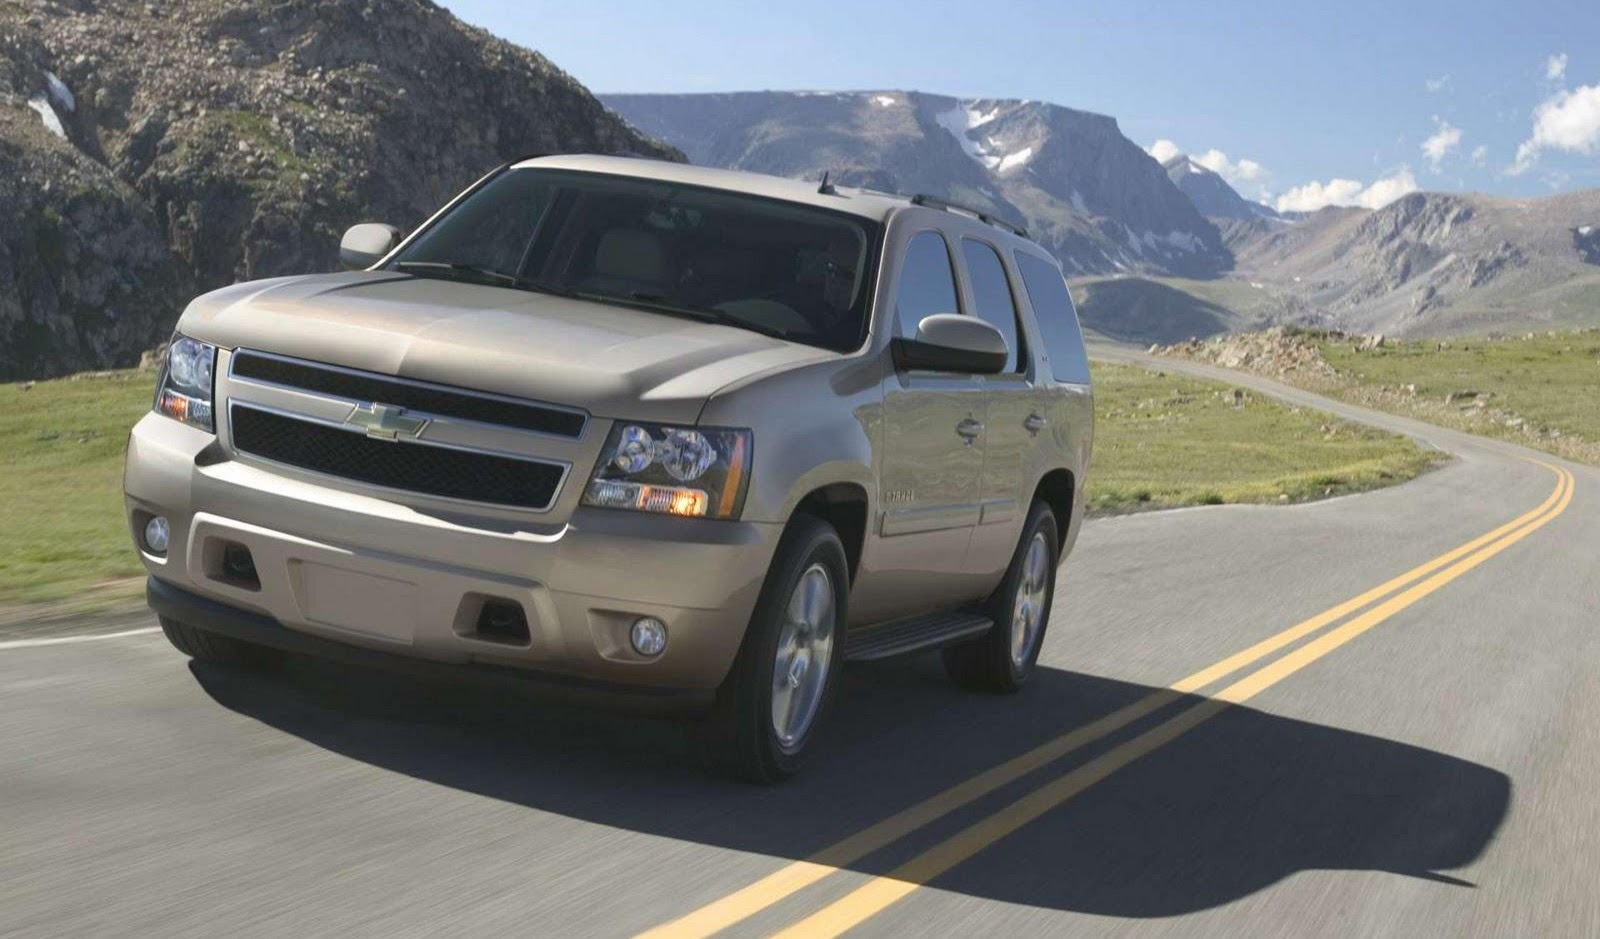 2007 Chevy Yukon Reviews 3 Prong Plug Wiring Diagram Chevrolet Tahoe Consumer Carscom Autos Post